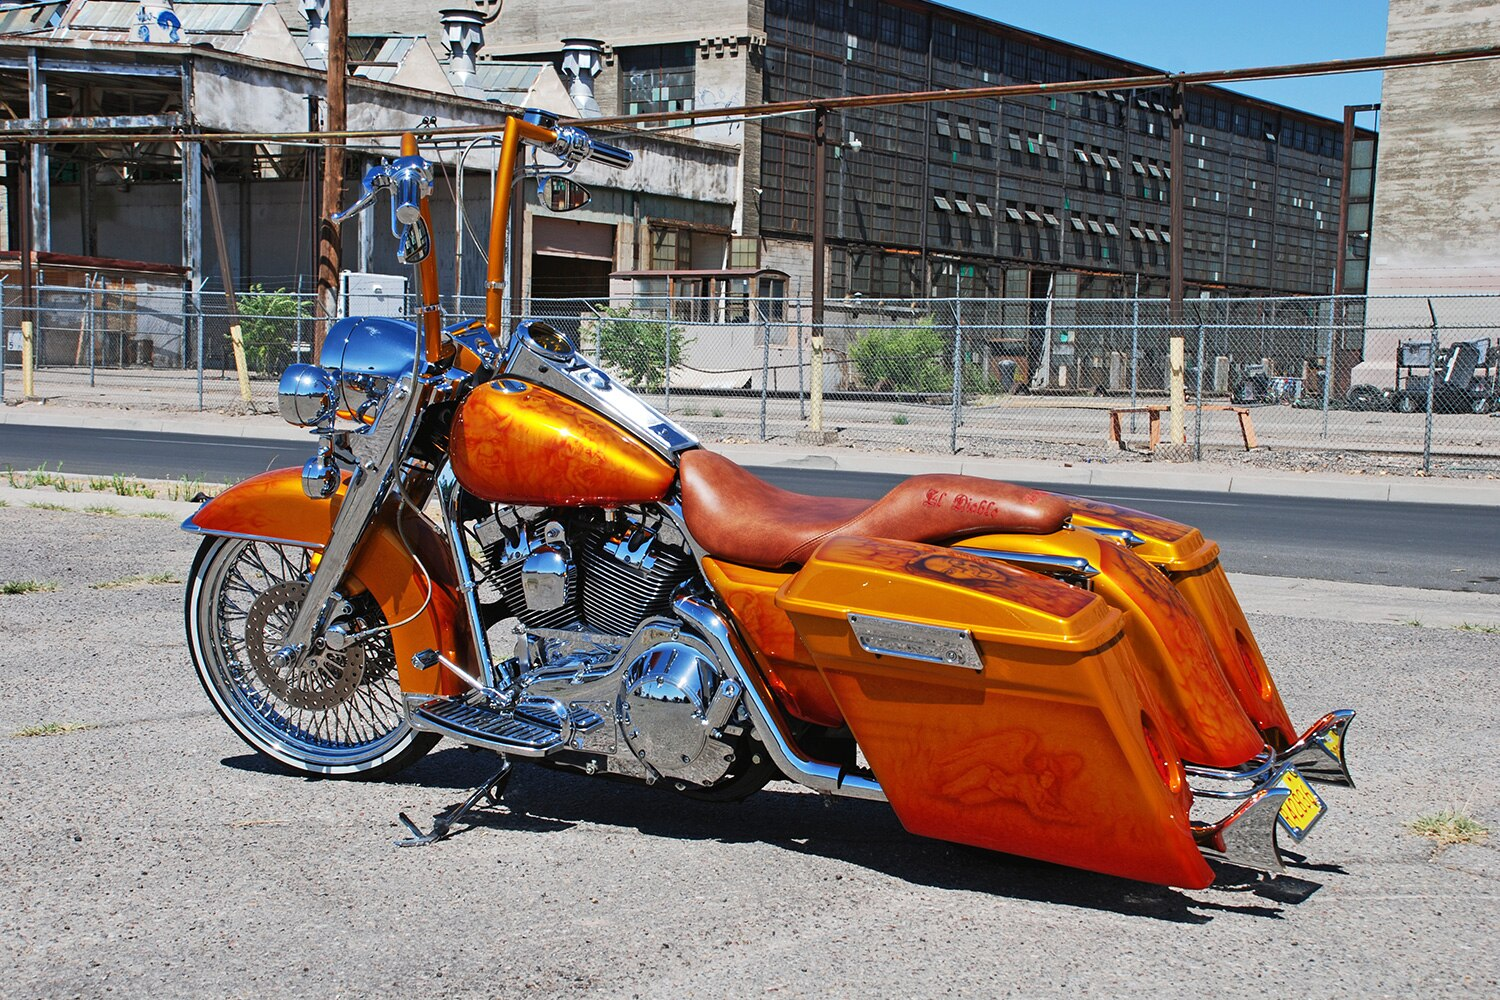 2004-harley-davidson-road-king-rear-left-side-view-promo